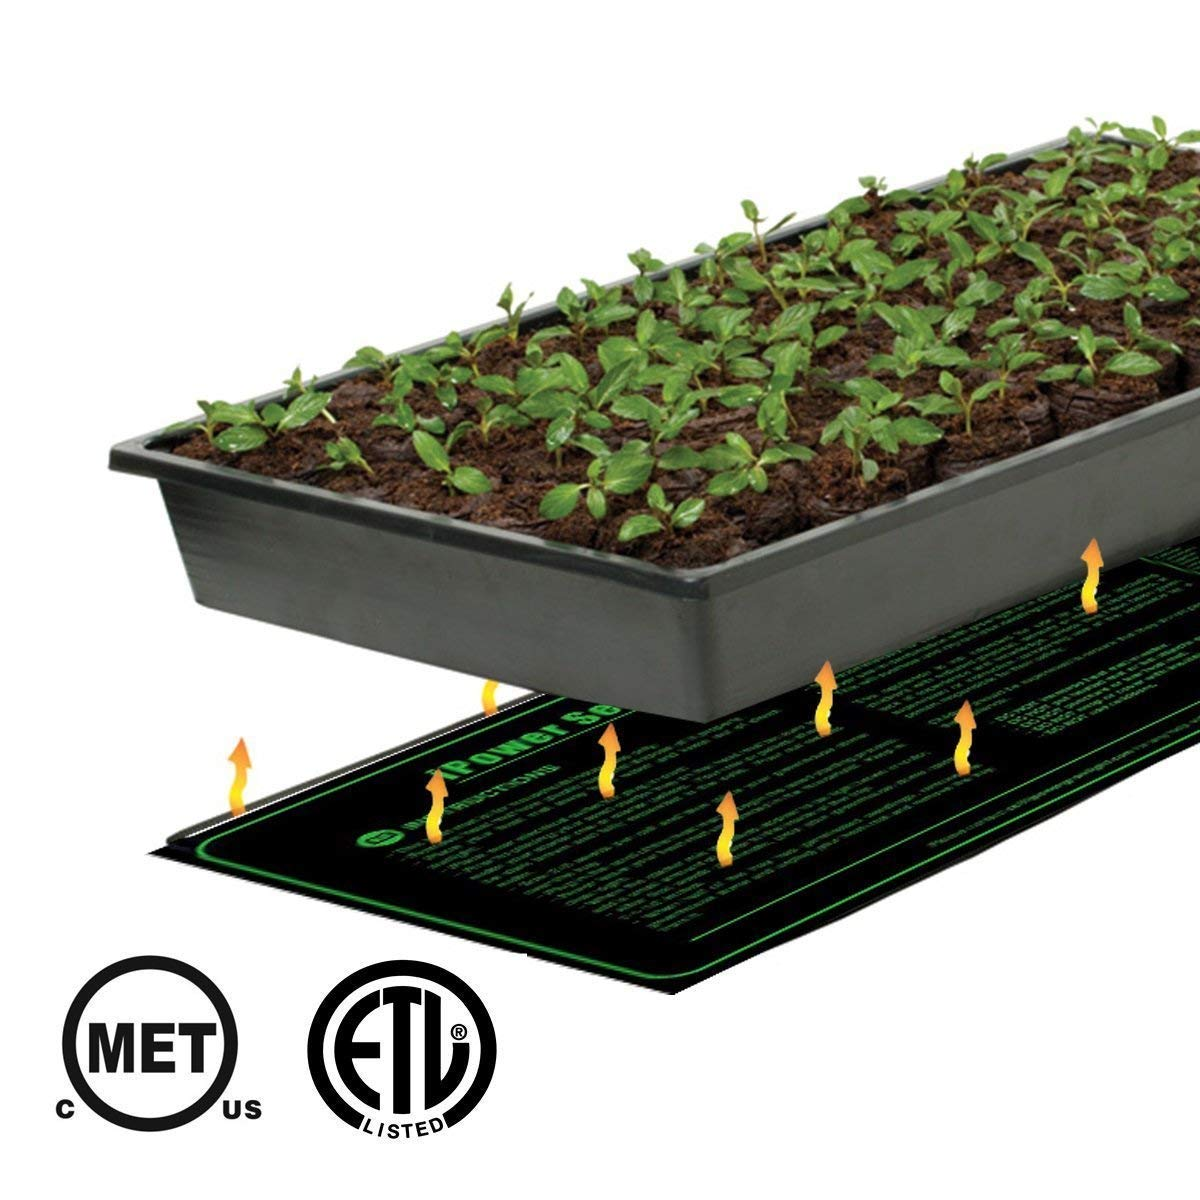 iPower 2 Pack 10'' x 20.5'' Warm Hydroponic Seedling Heat Mat and Digital Thermostat Control Combo Set for Seed Germination, Black by iPower (Image #6)